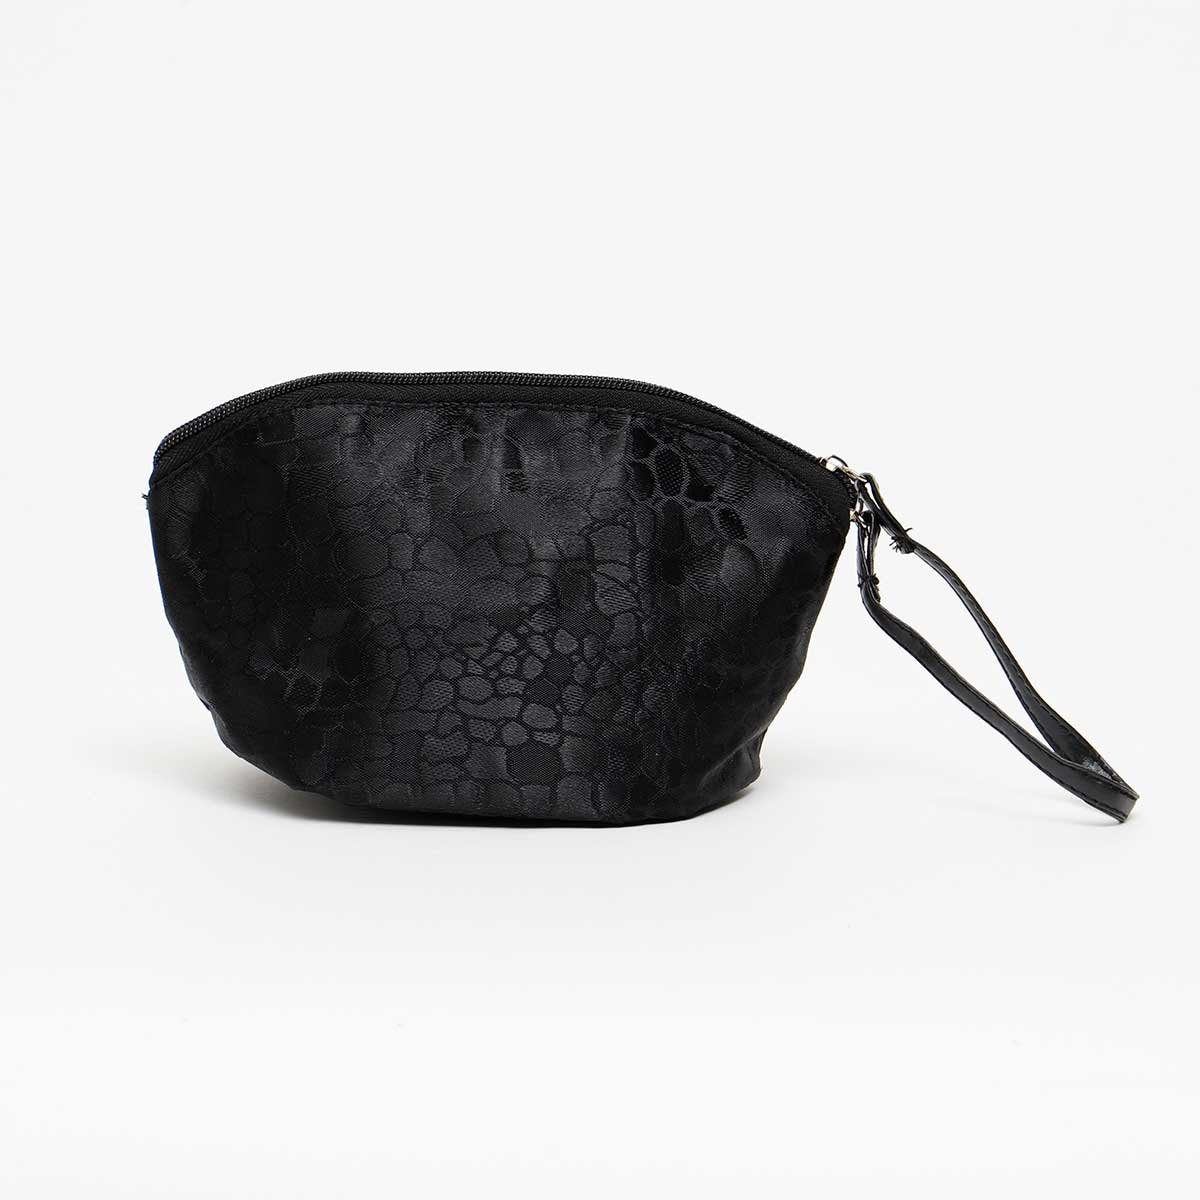 BLACK COBBLESTONE ACCESSORY BAG WITH STRAP